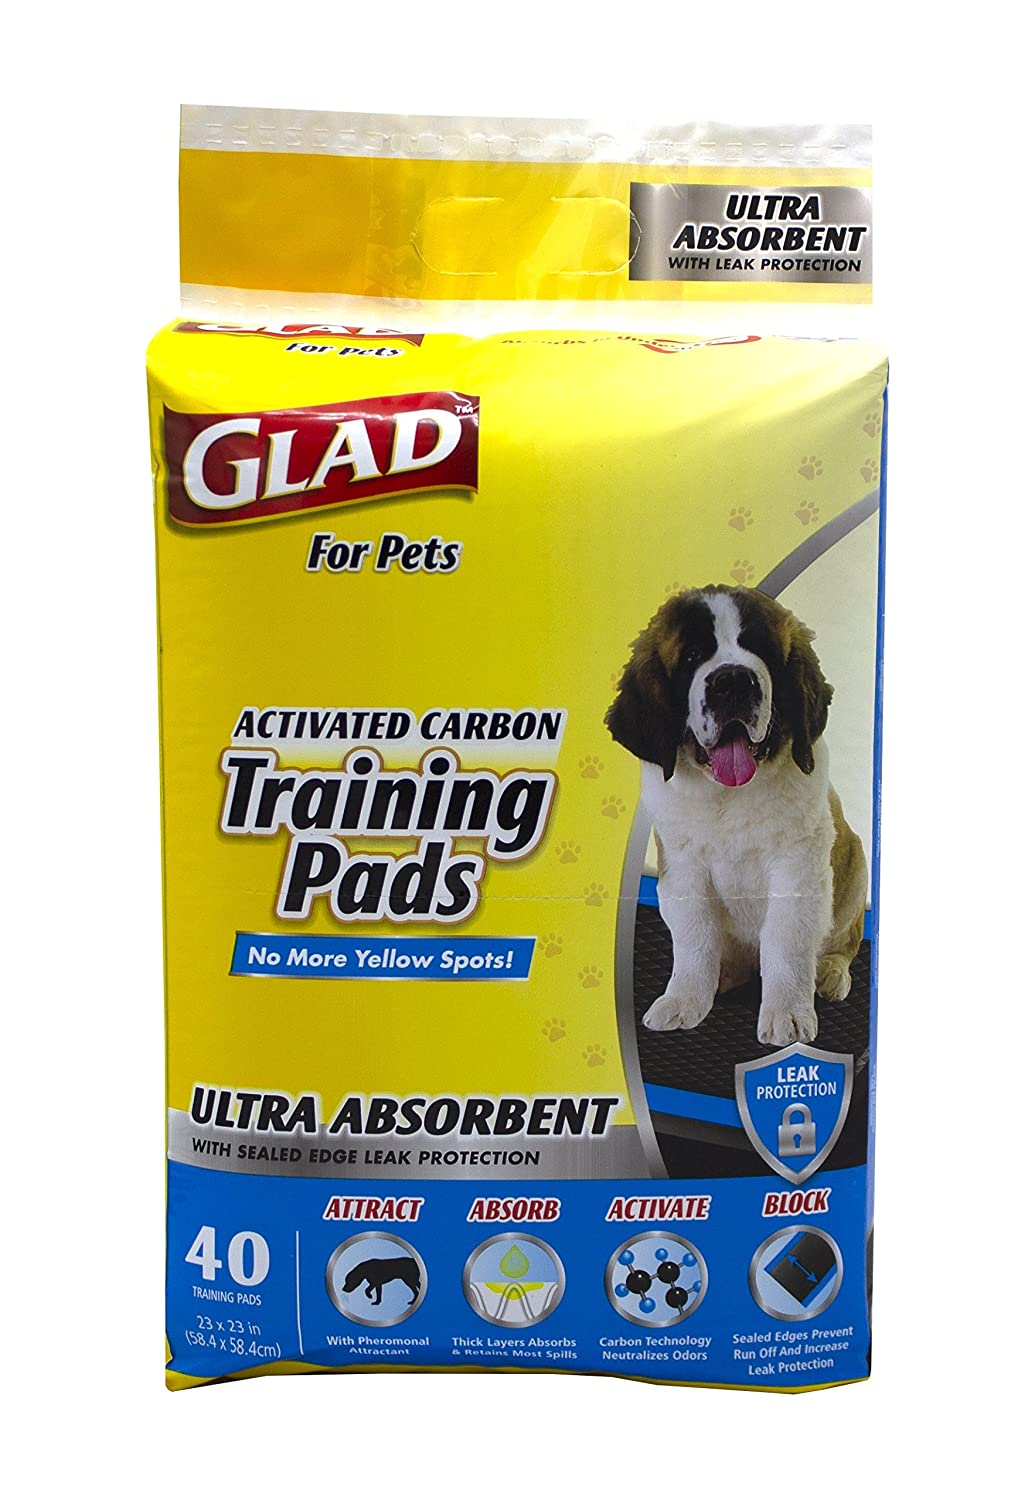 Glad for Pets FFP9714ST Glad For Pets Ultra-Absorbent Activated Carbon Training Pads with Folded Edges, 40 Count | Best Pee Pads for All Dogs and Puppies, Black Training Pads Folded Edges